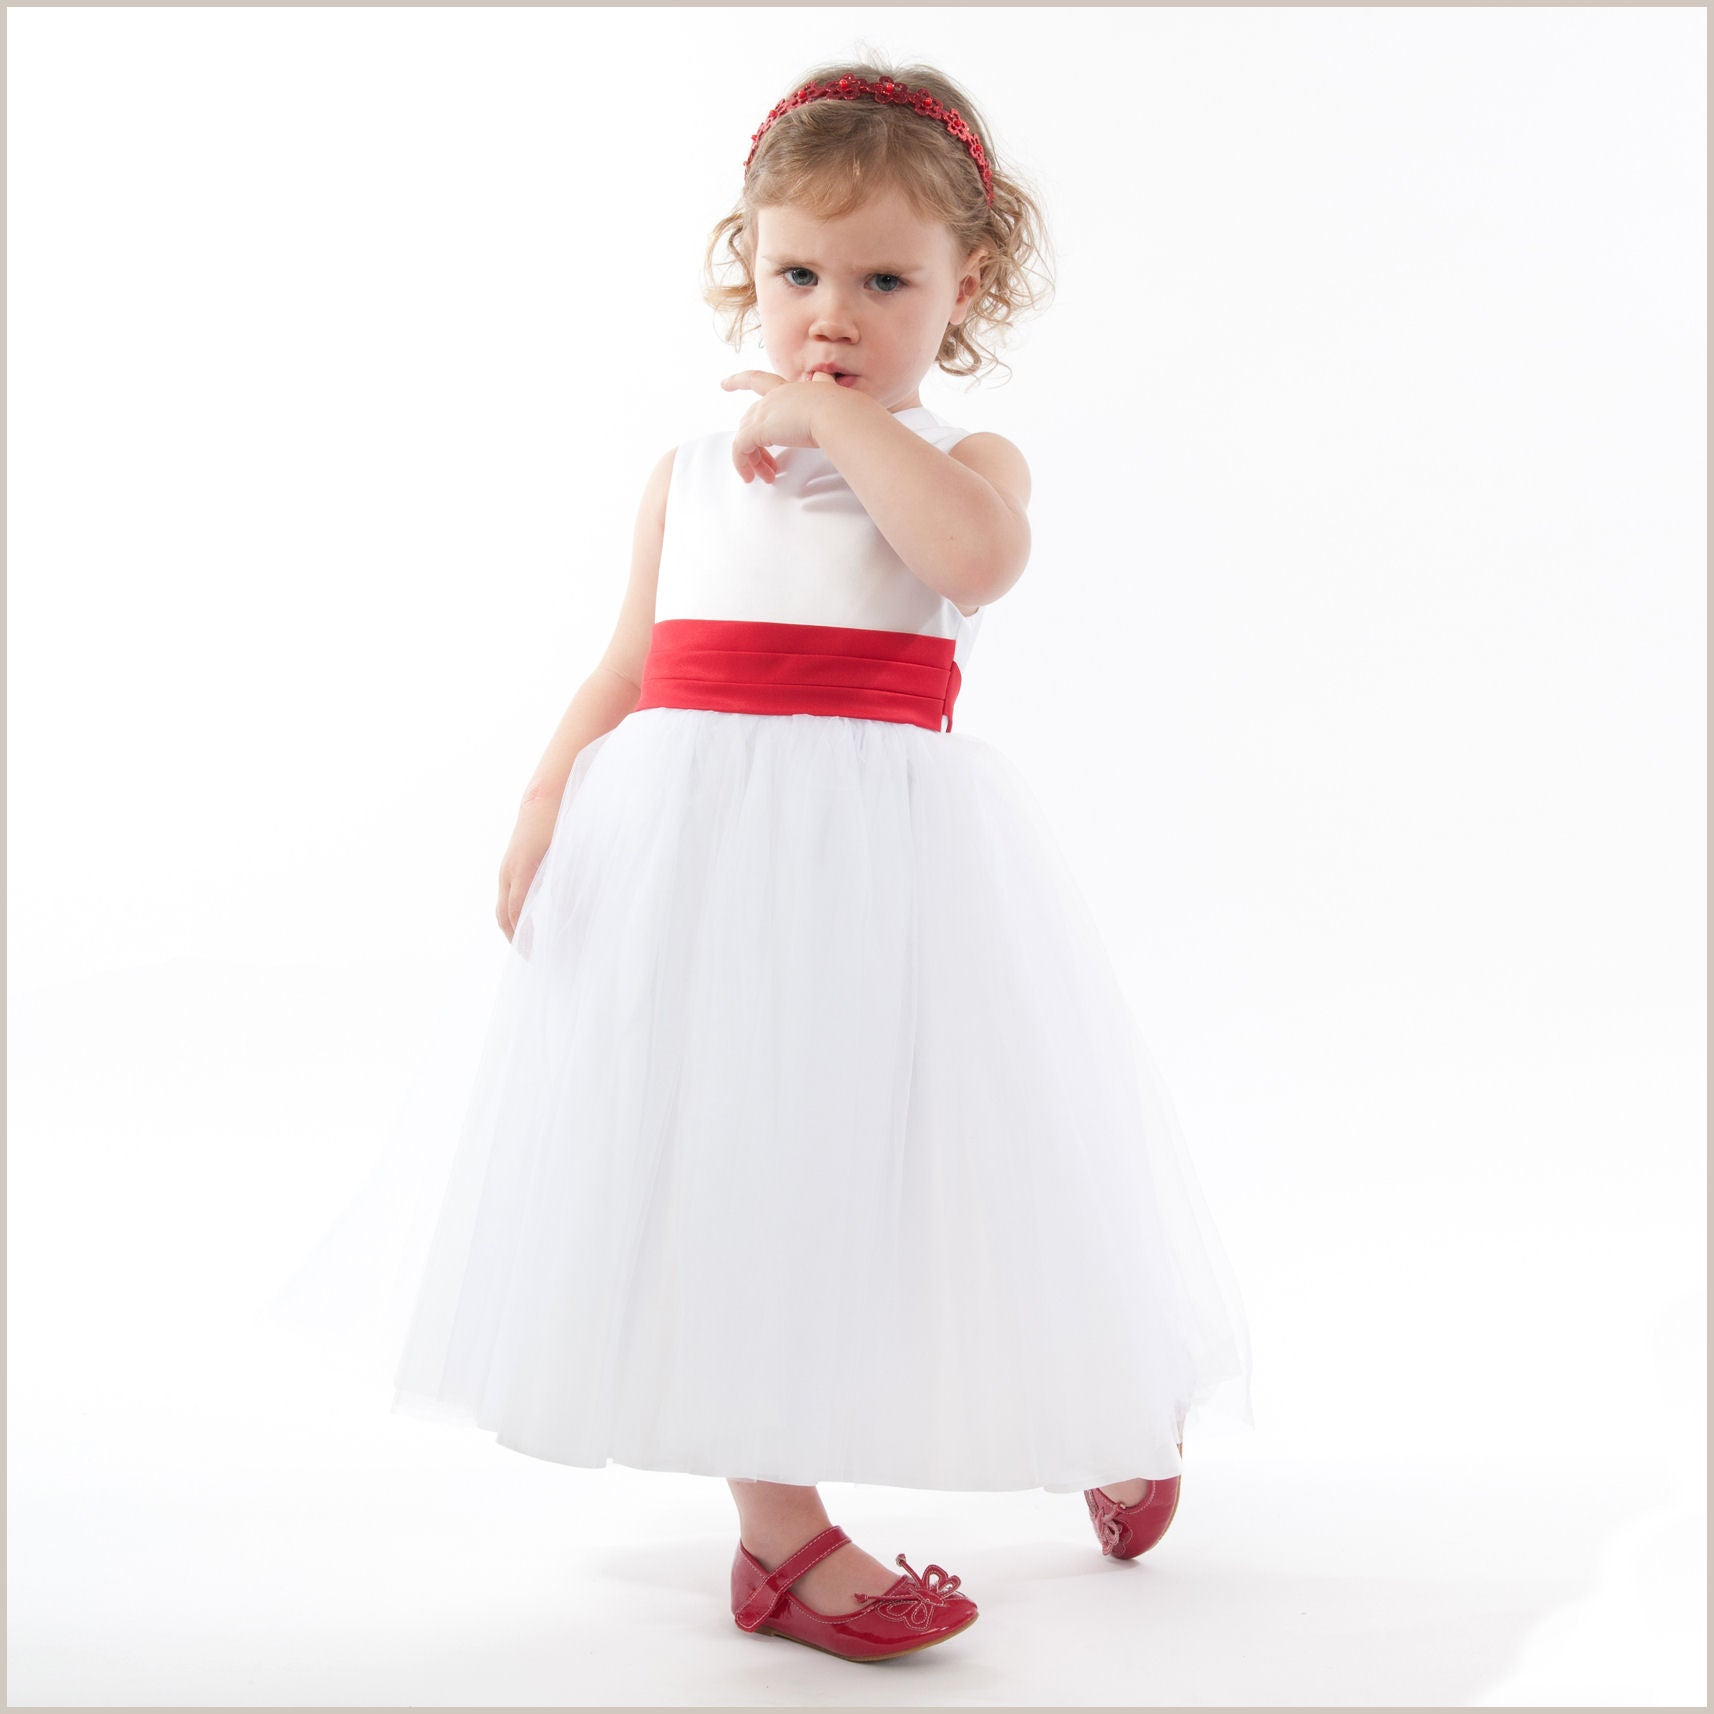 White Flower Girl Dress With Red Sash Great For Winter Wedding With